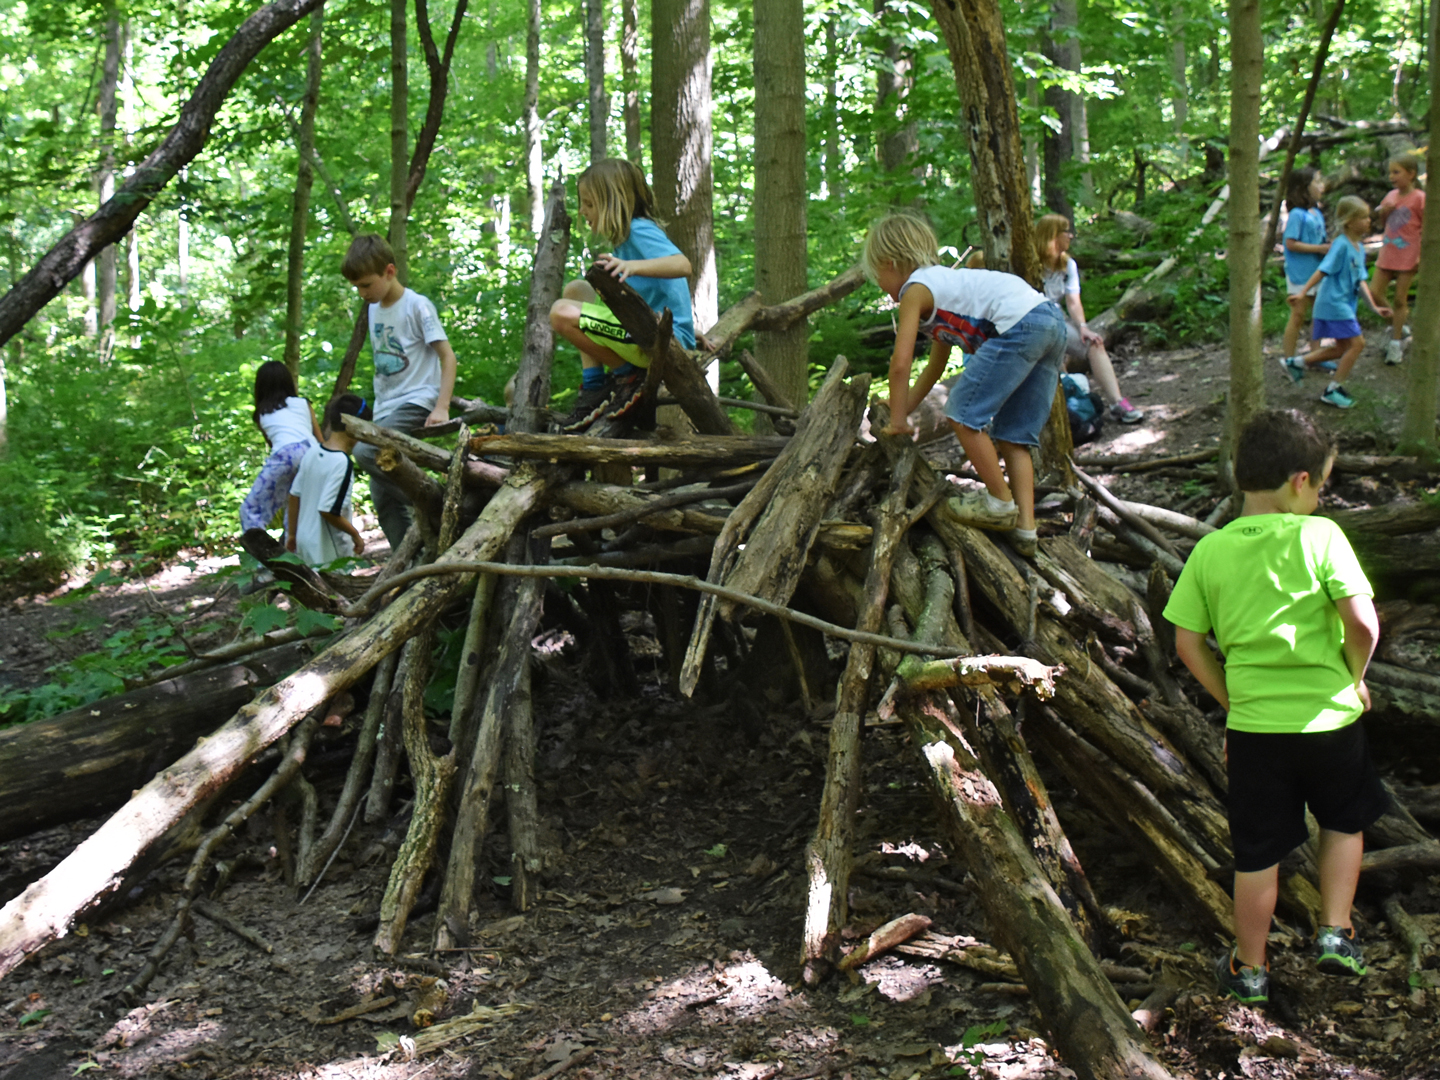 Kids climb over a fort built in natural play area at Sharon Woods